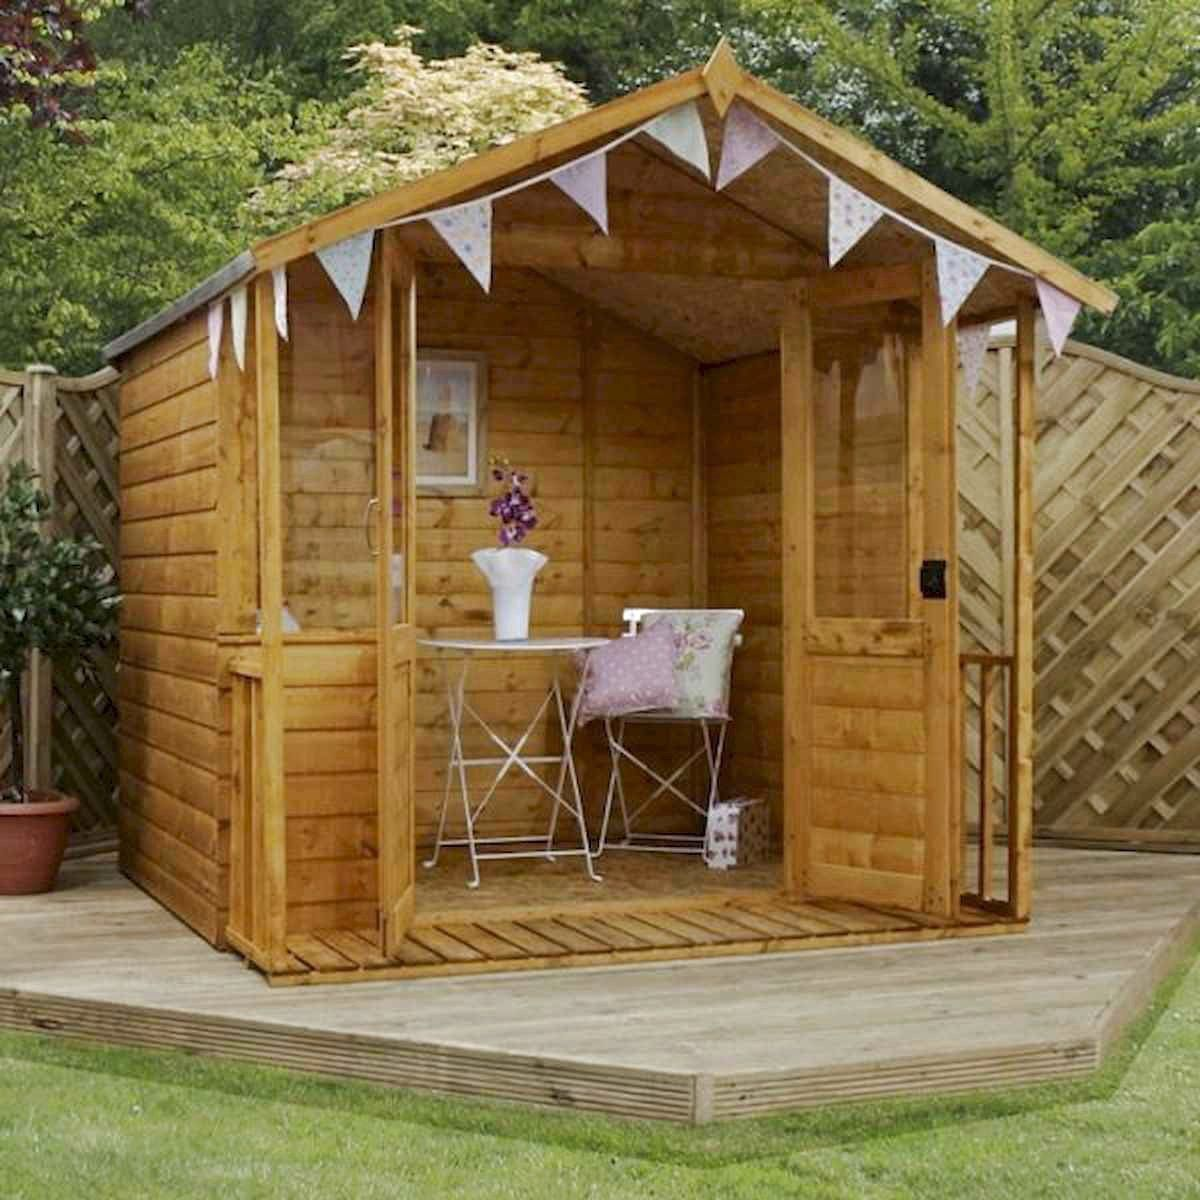 Cozy Hous Ideas: 76 Favourite Summer House Design Ideas And Makeover